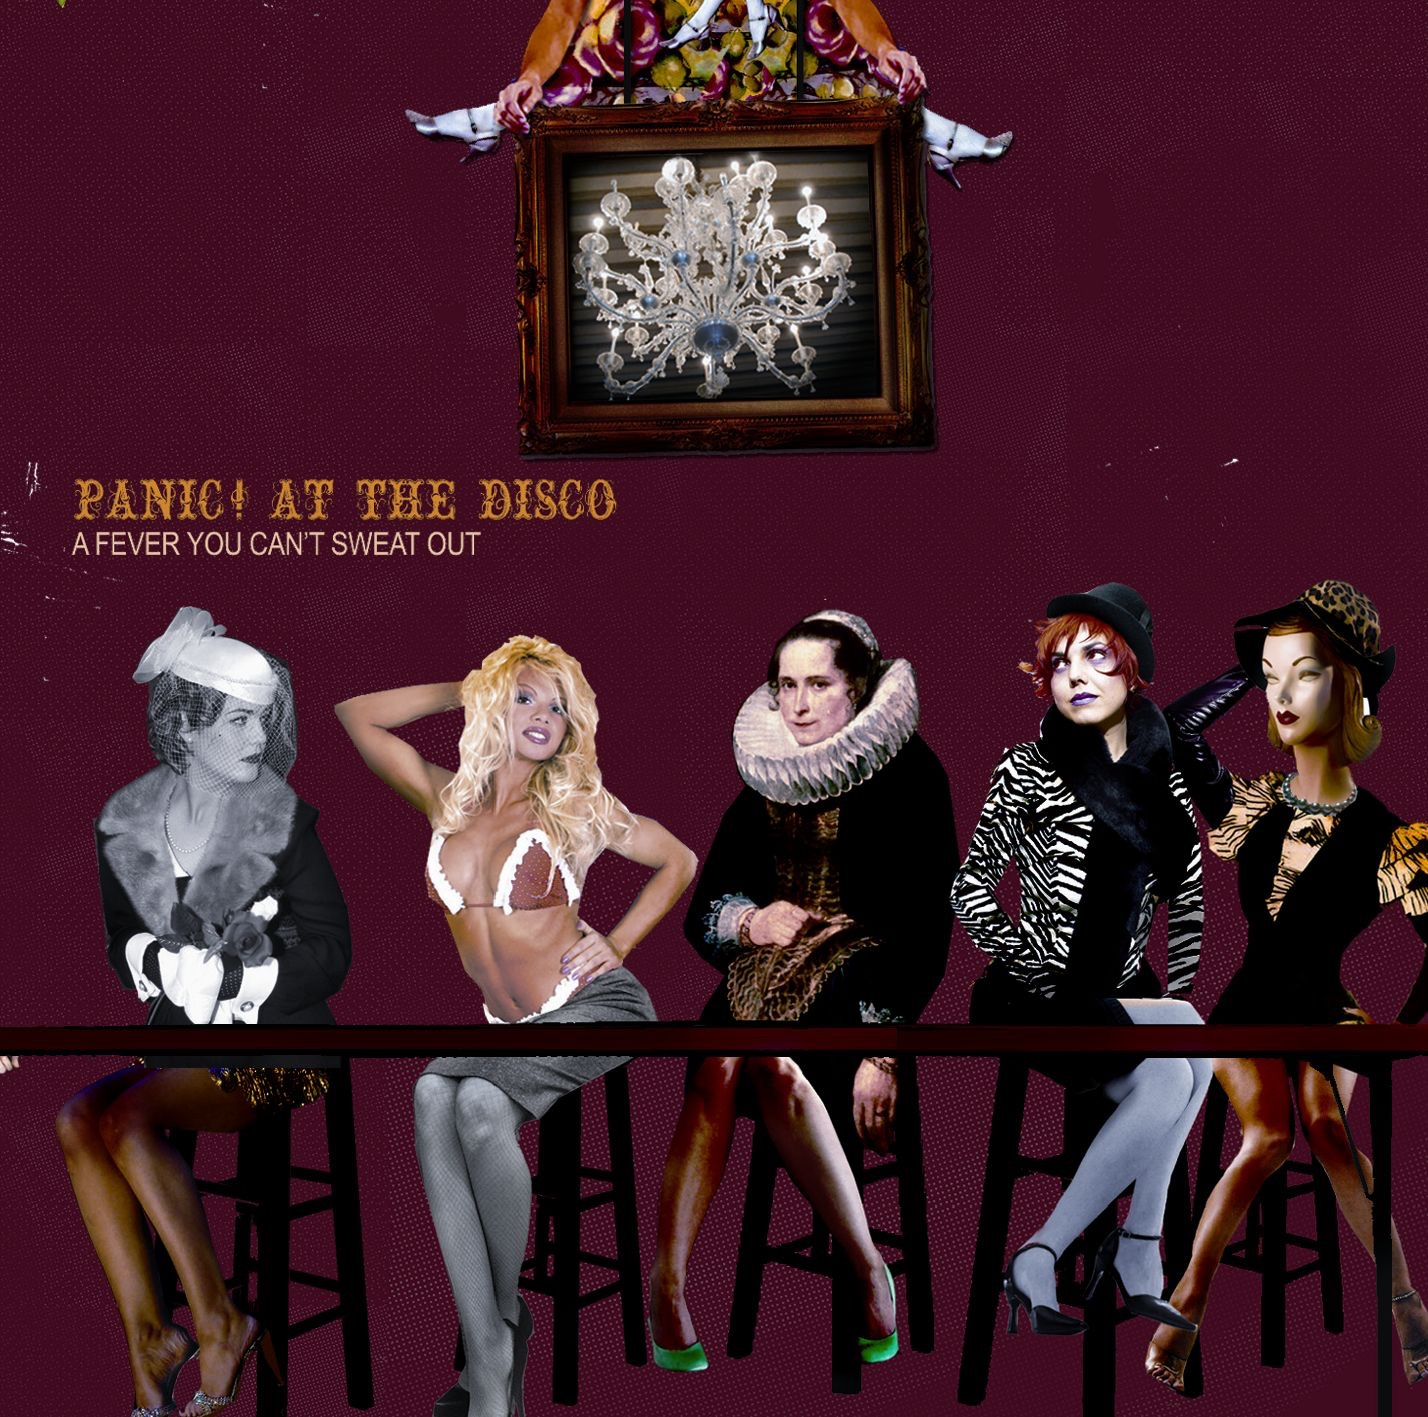 Art for I Write Sins Not Tragedies by Panic! At the Disco